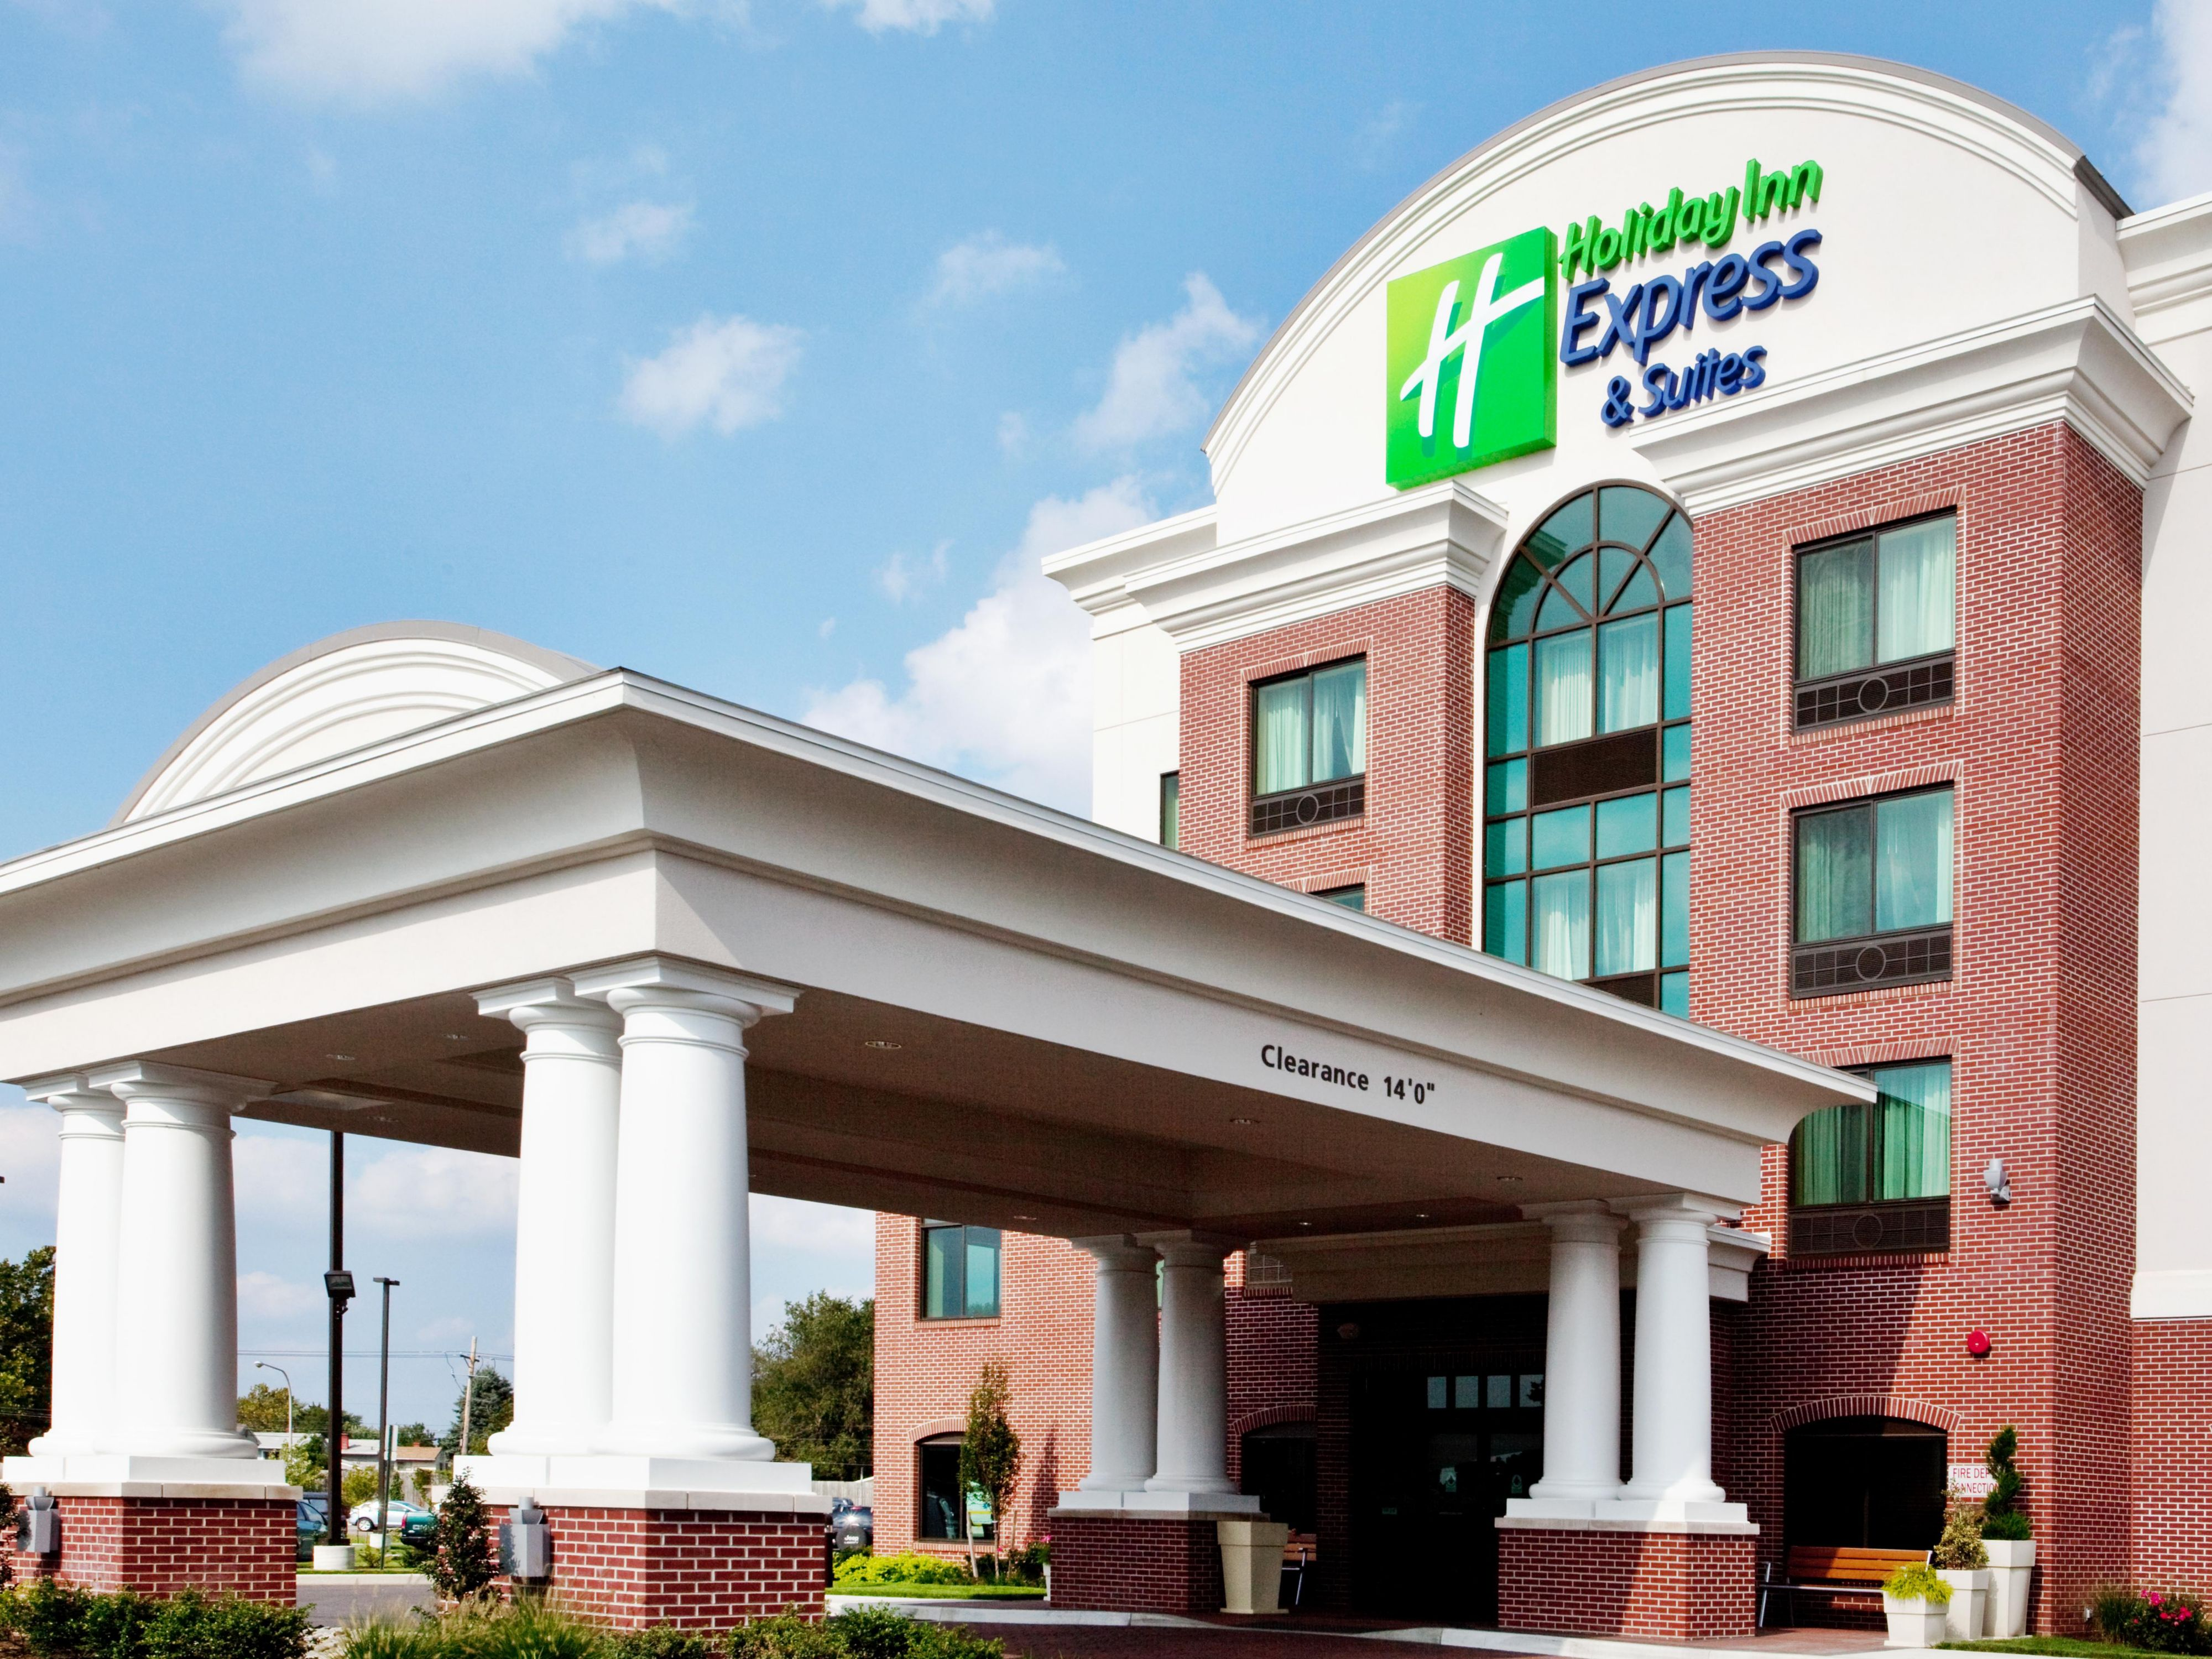 Image of the Holiday Inn Express and Suites in Wilmington Delaware